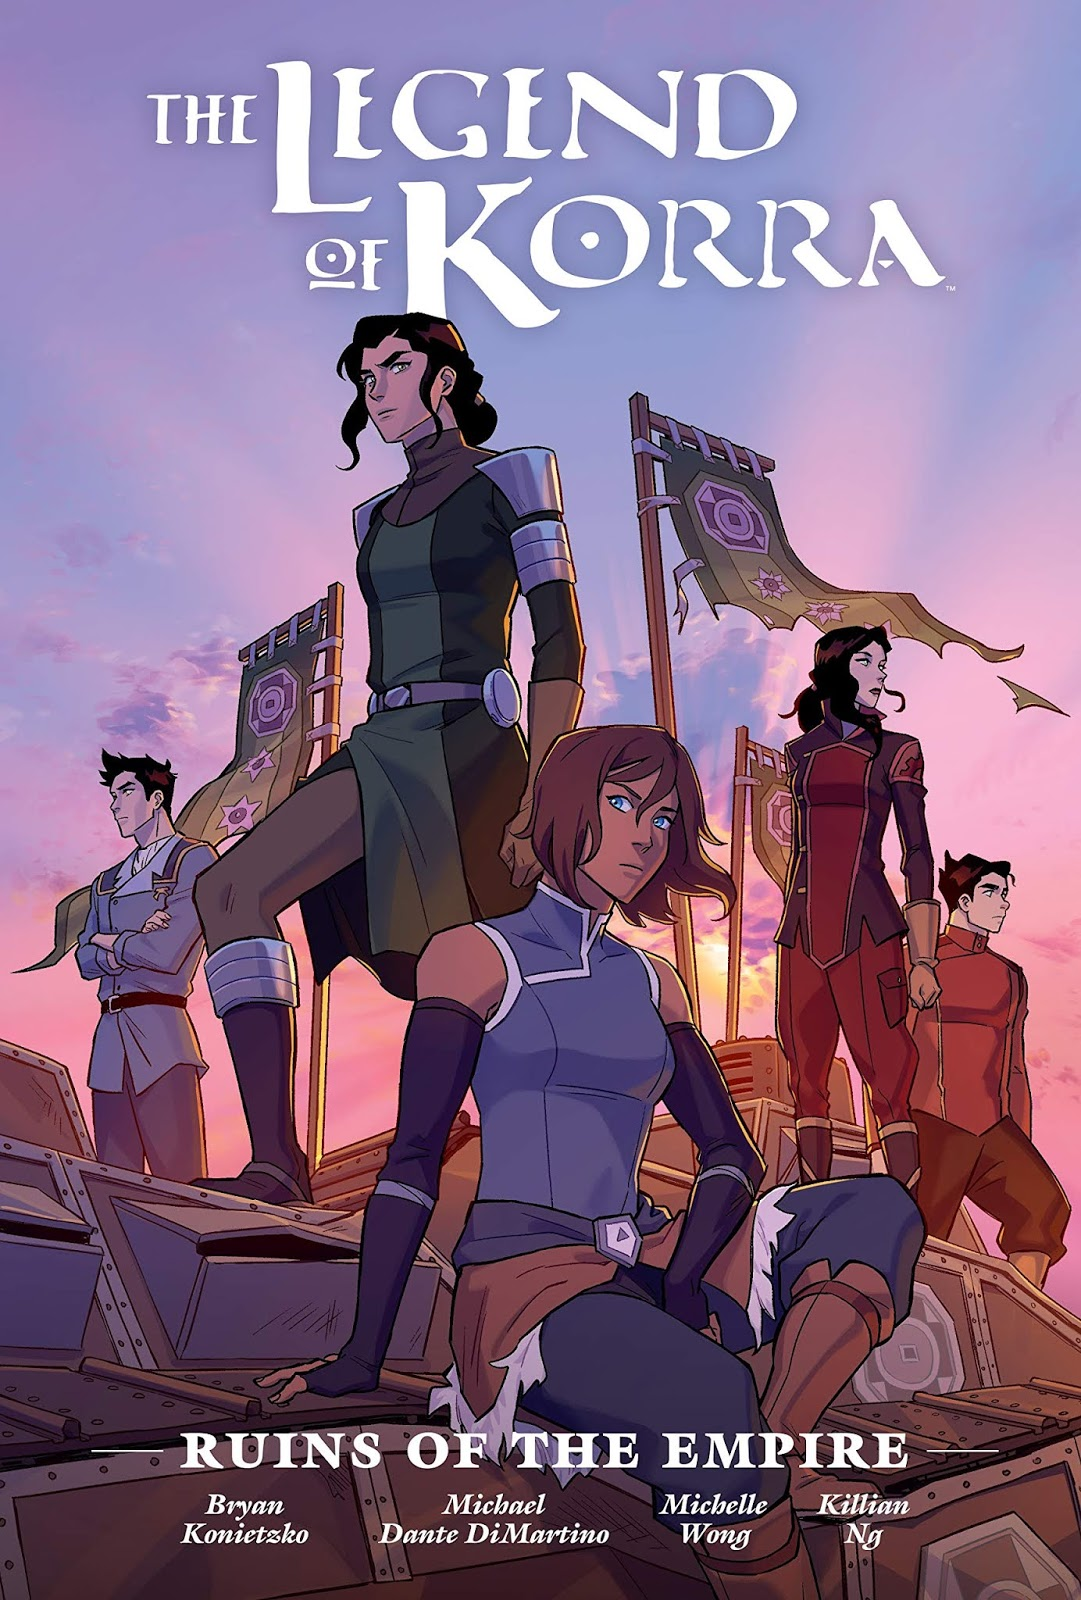 The Legend of Korra: Ruins of the Empire Library Edition by Michael Dante DiMartino, Michelle Wong, Killian Ng